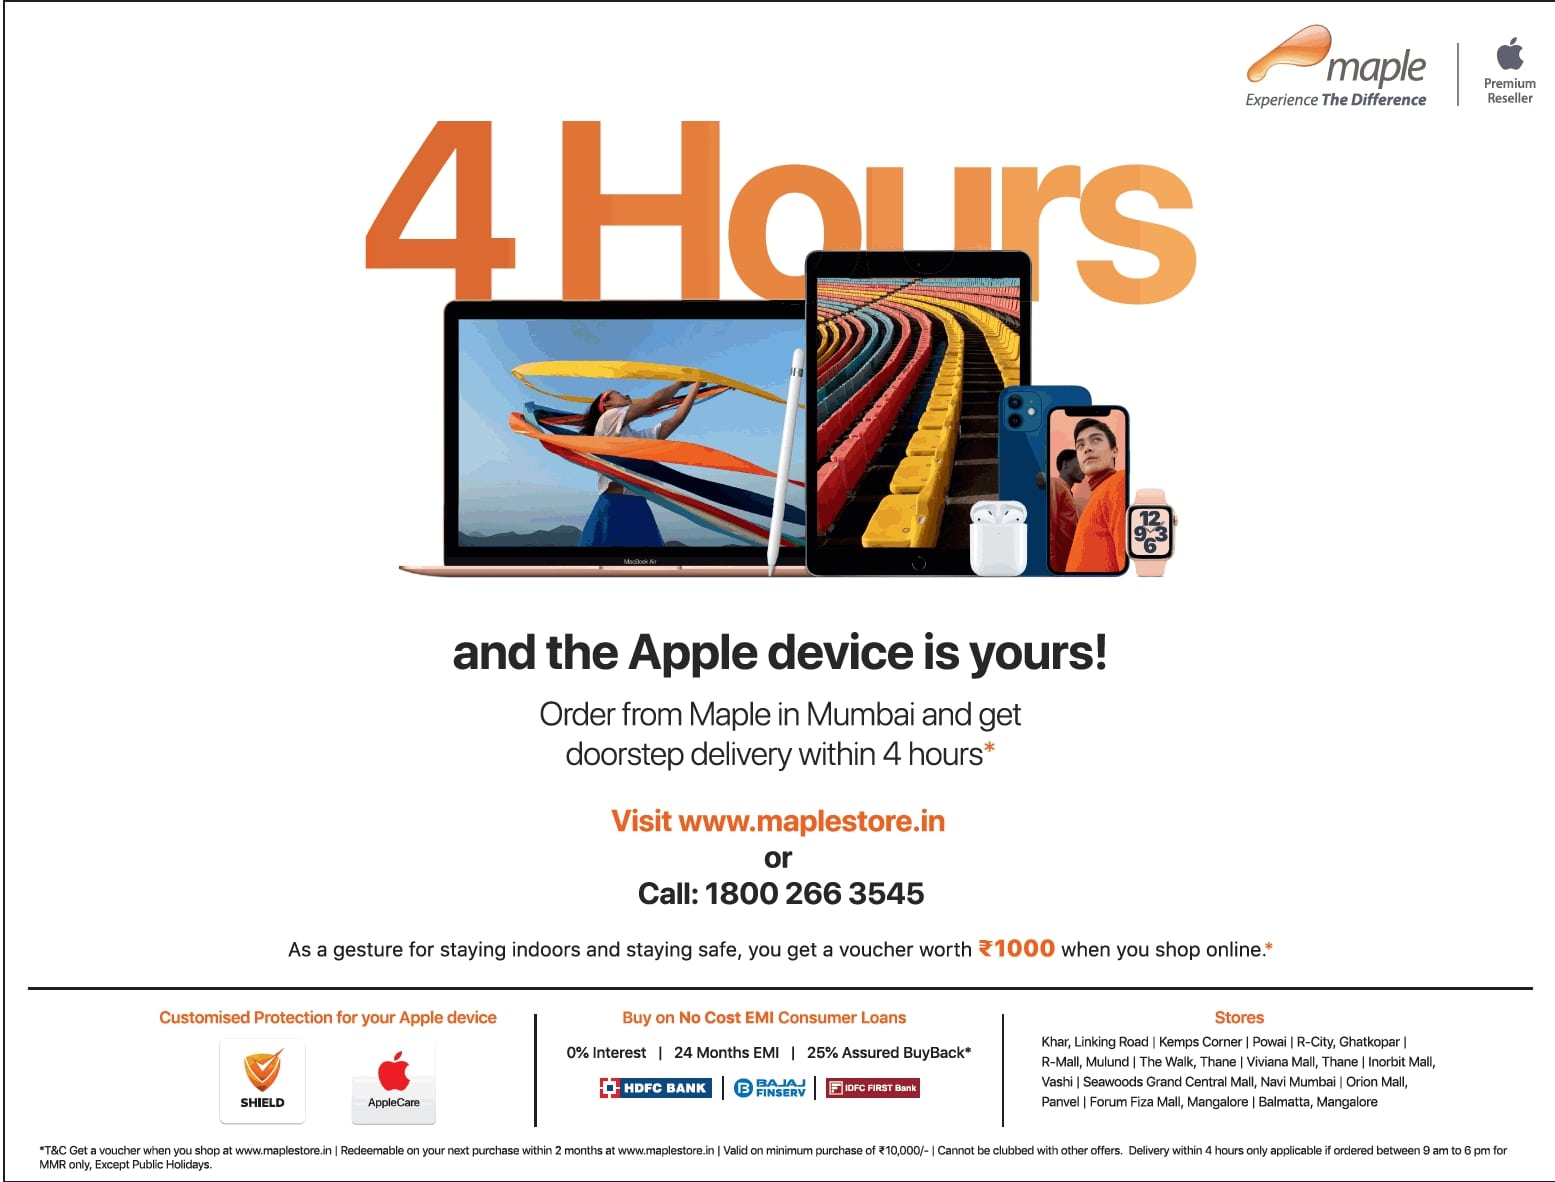 Apple-4-Hours-And-The-Apple-Device-Is-Yours-Ad-Bombay-Times-15-05-2021